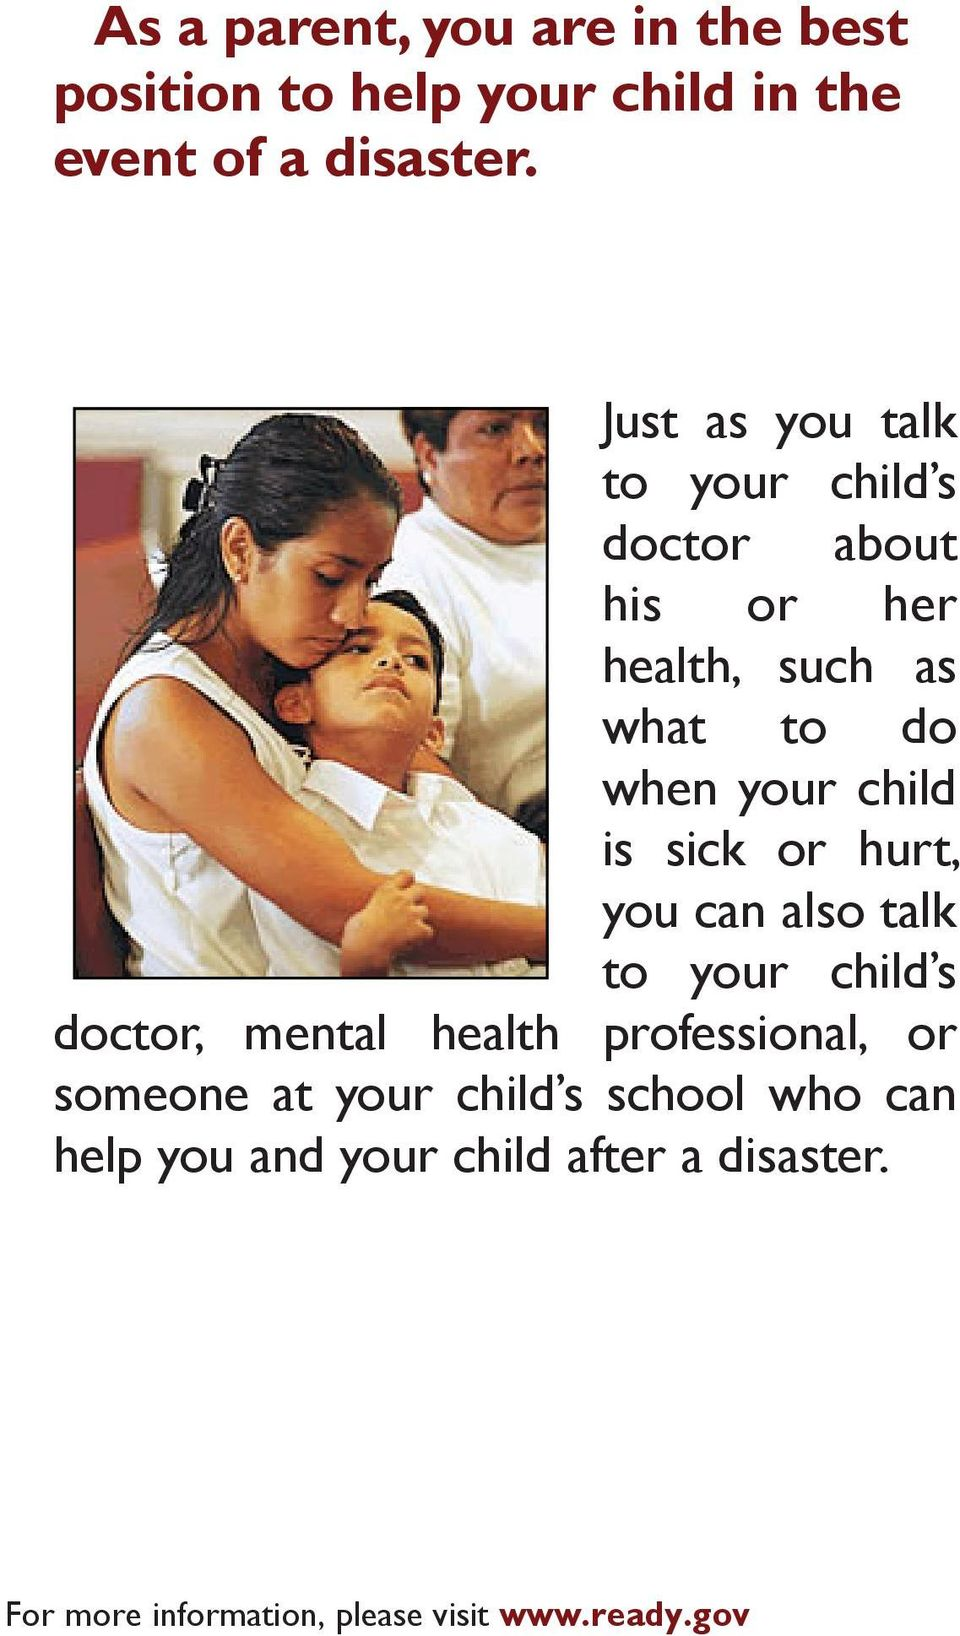 Just as you talk to your child s doctor about his or her health, such as what to do when